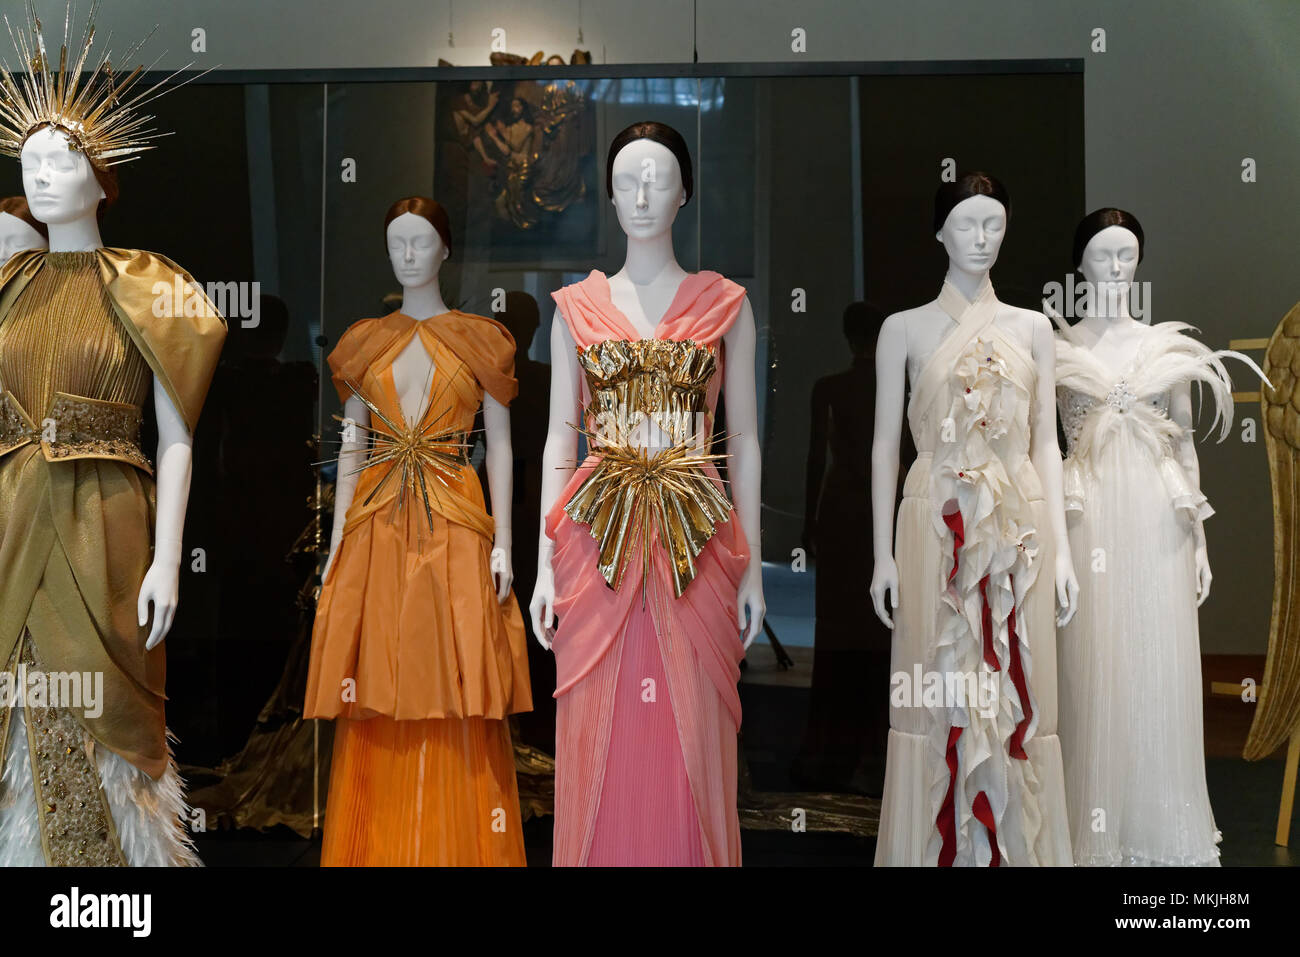 """9651d408a7c """"Heavenly Bodies: Fashion and the Catholic Imagination"""" opened at the  Metropolitan Museum of Art, New York, New York on May 7 with creations by  some ..."""